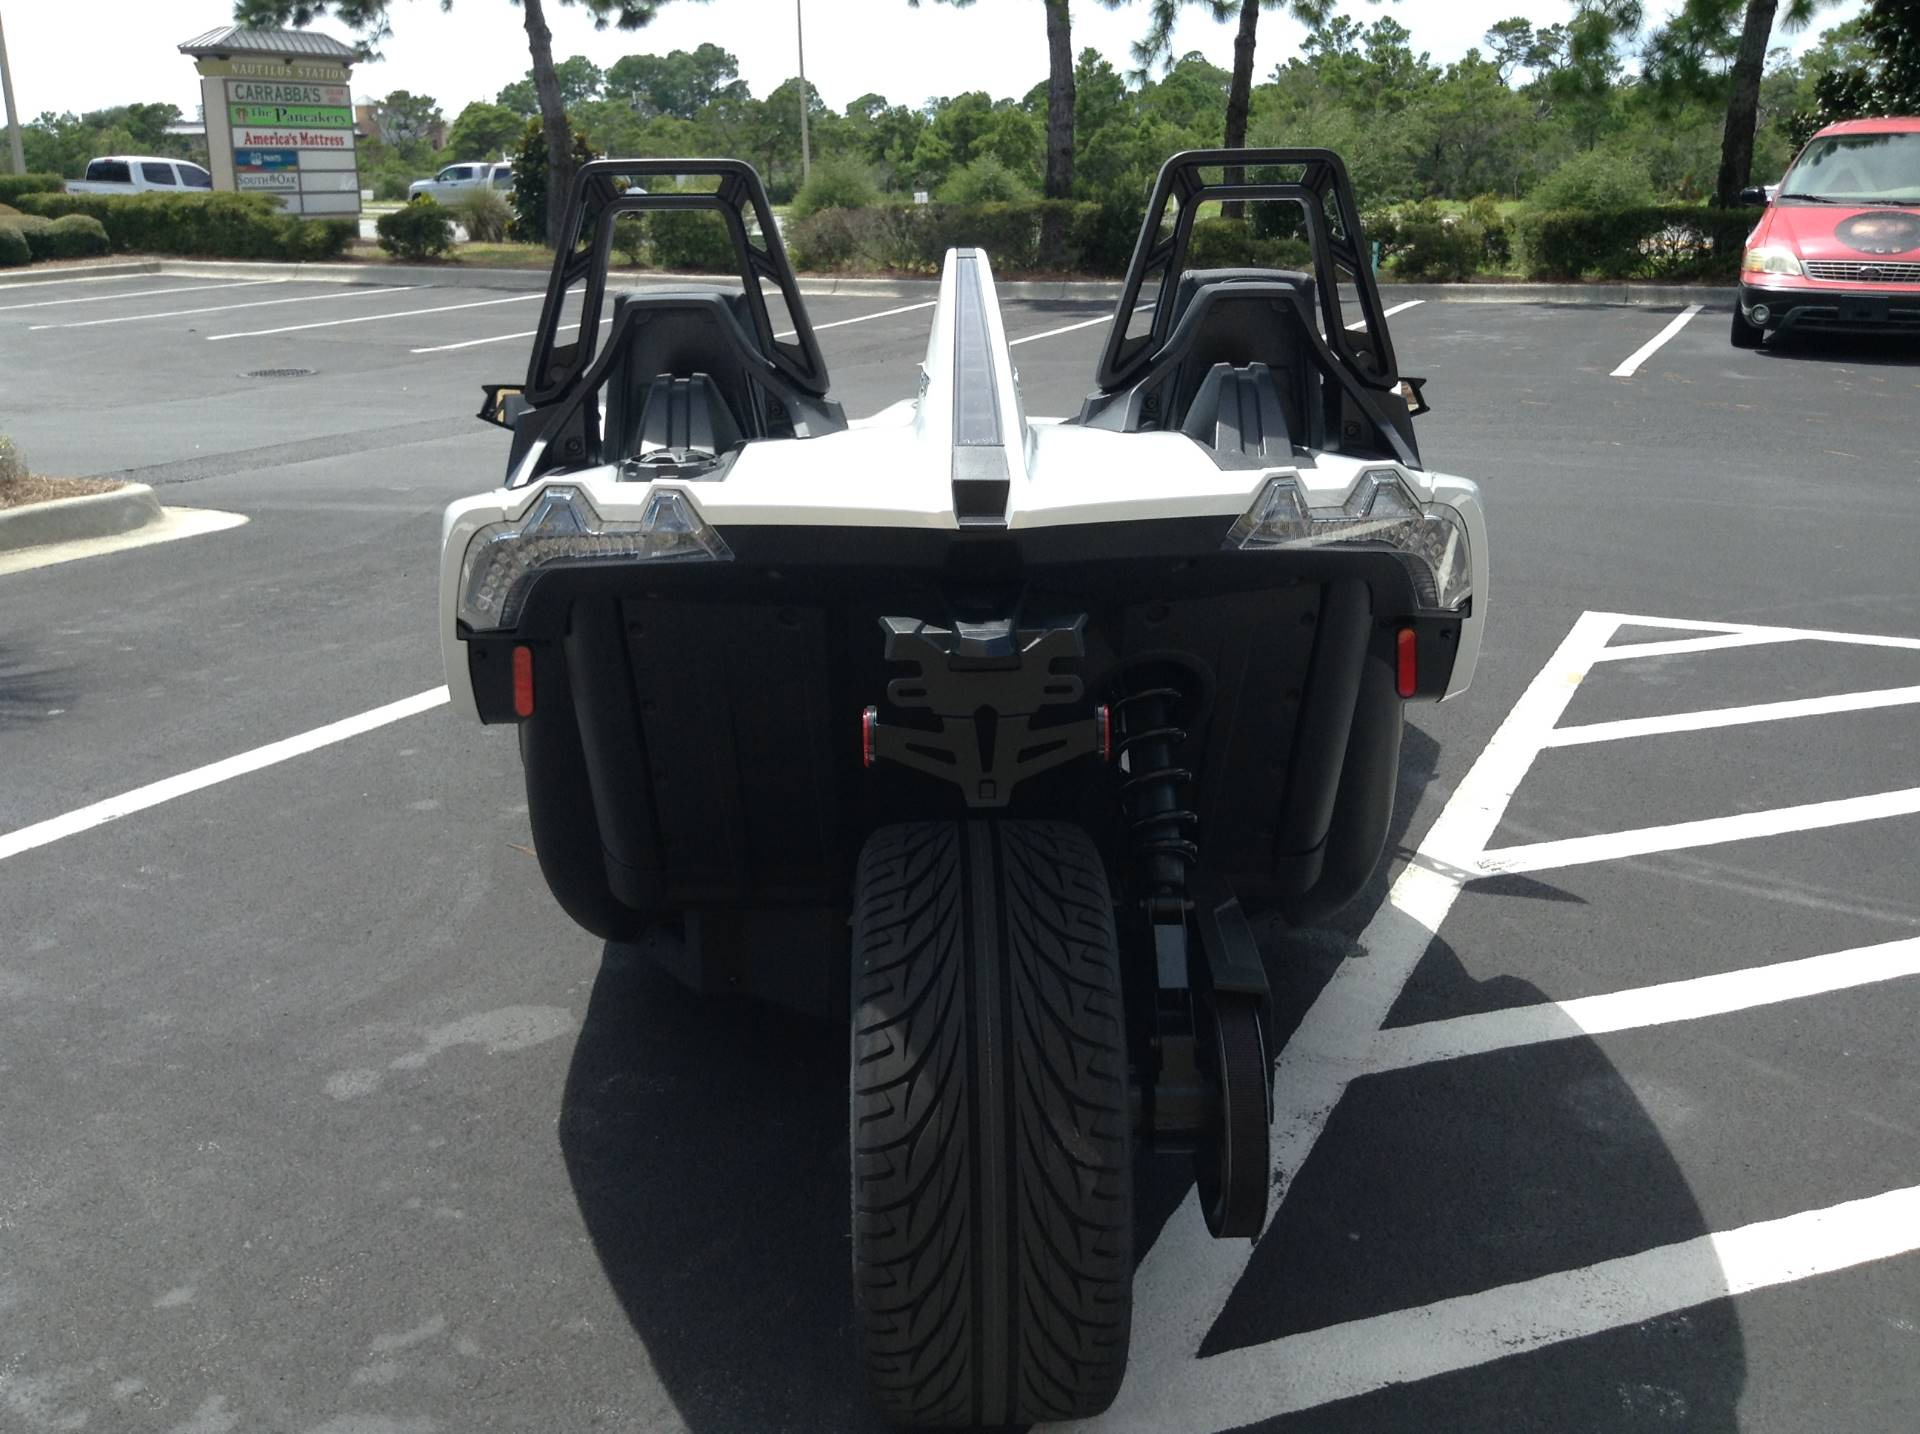 2019 Polaris Slingshot base in Panama City Beach, Florida - Photo 8